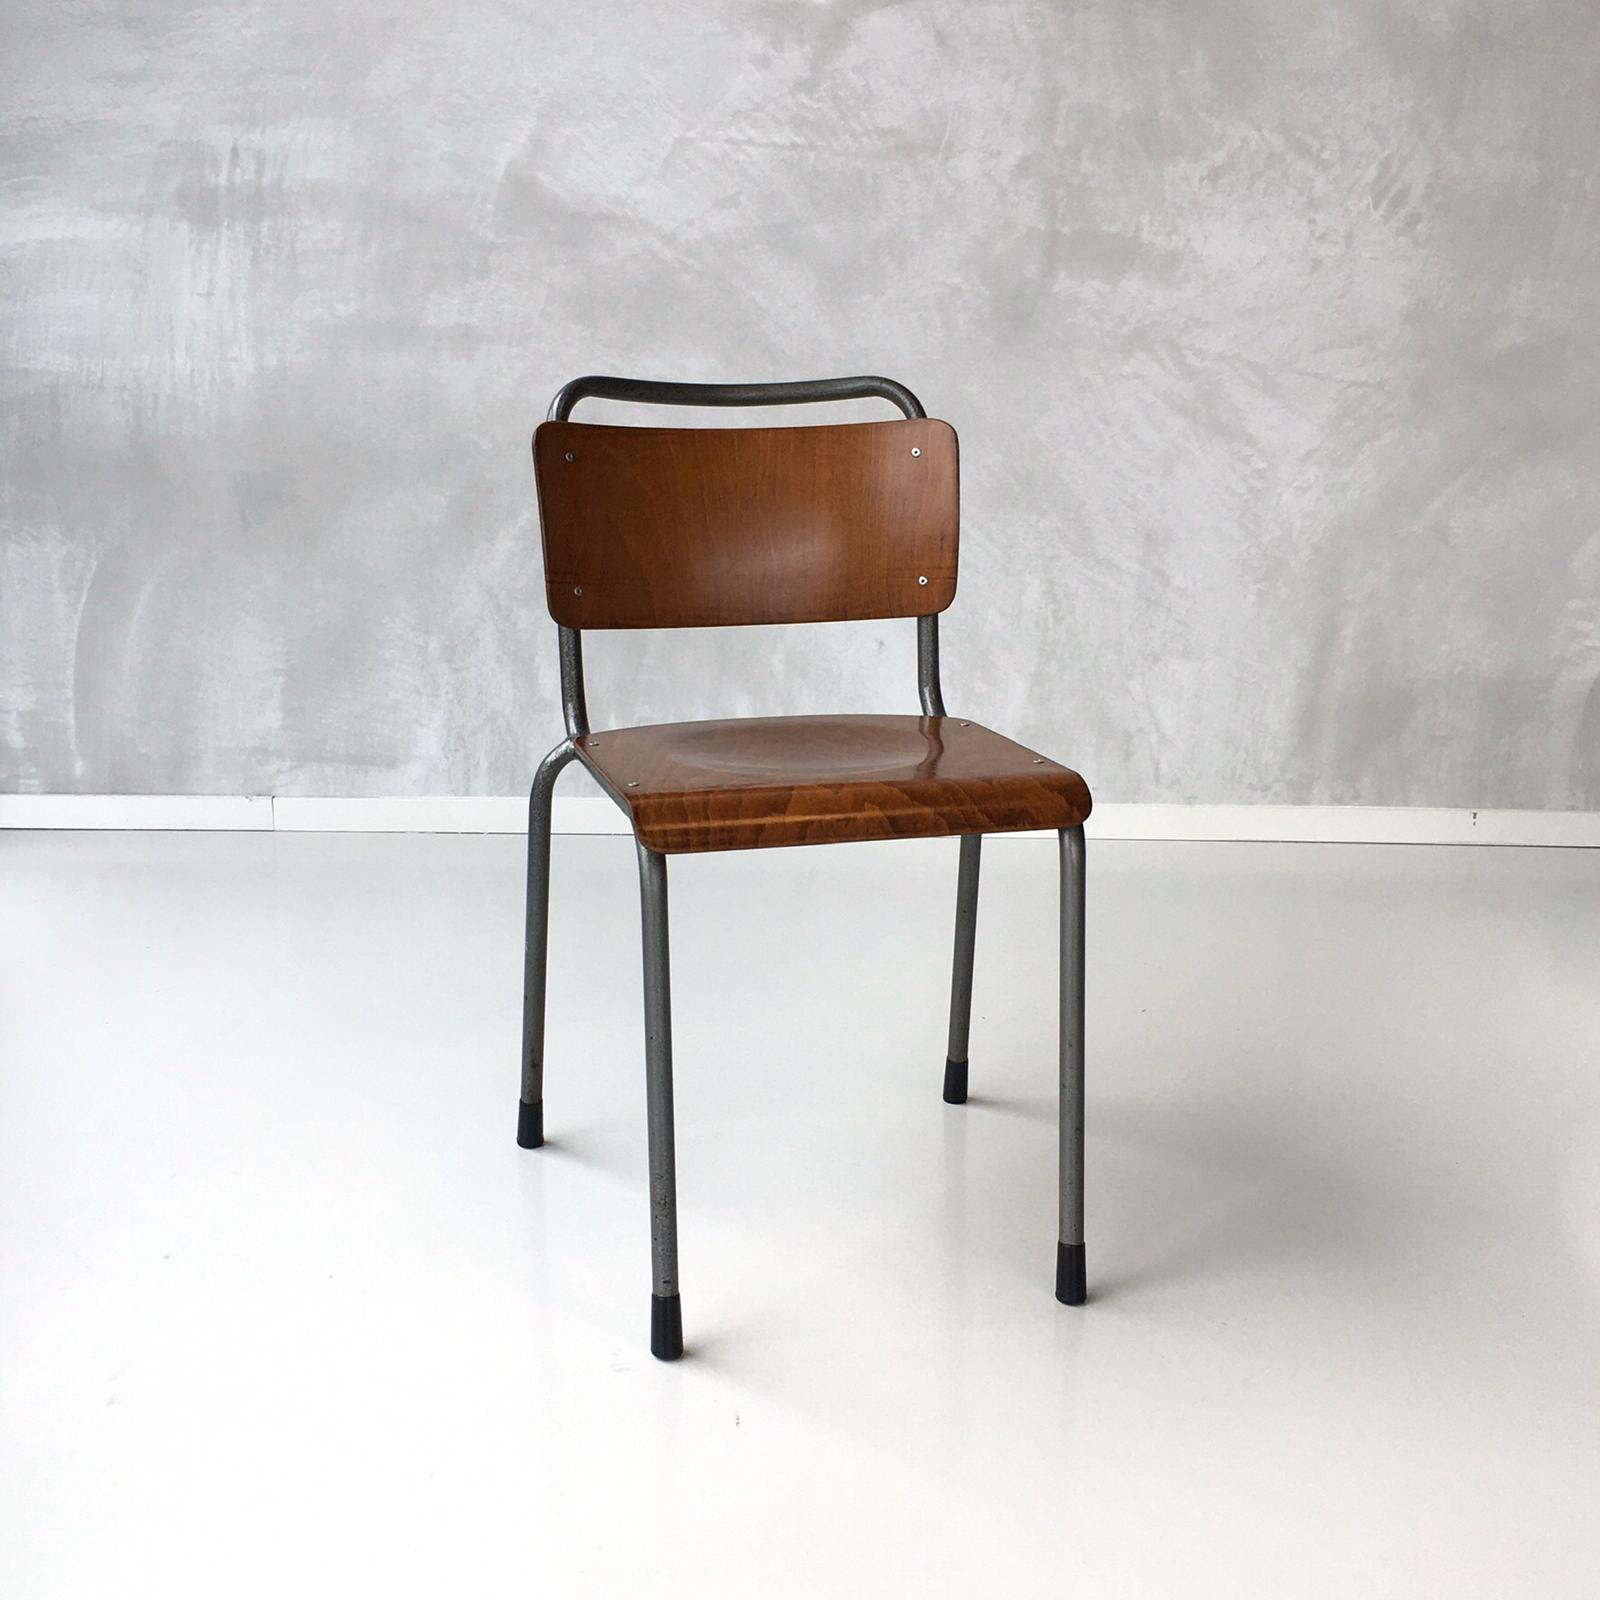 strijk-design-vintage-chair_03